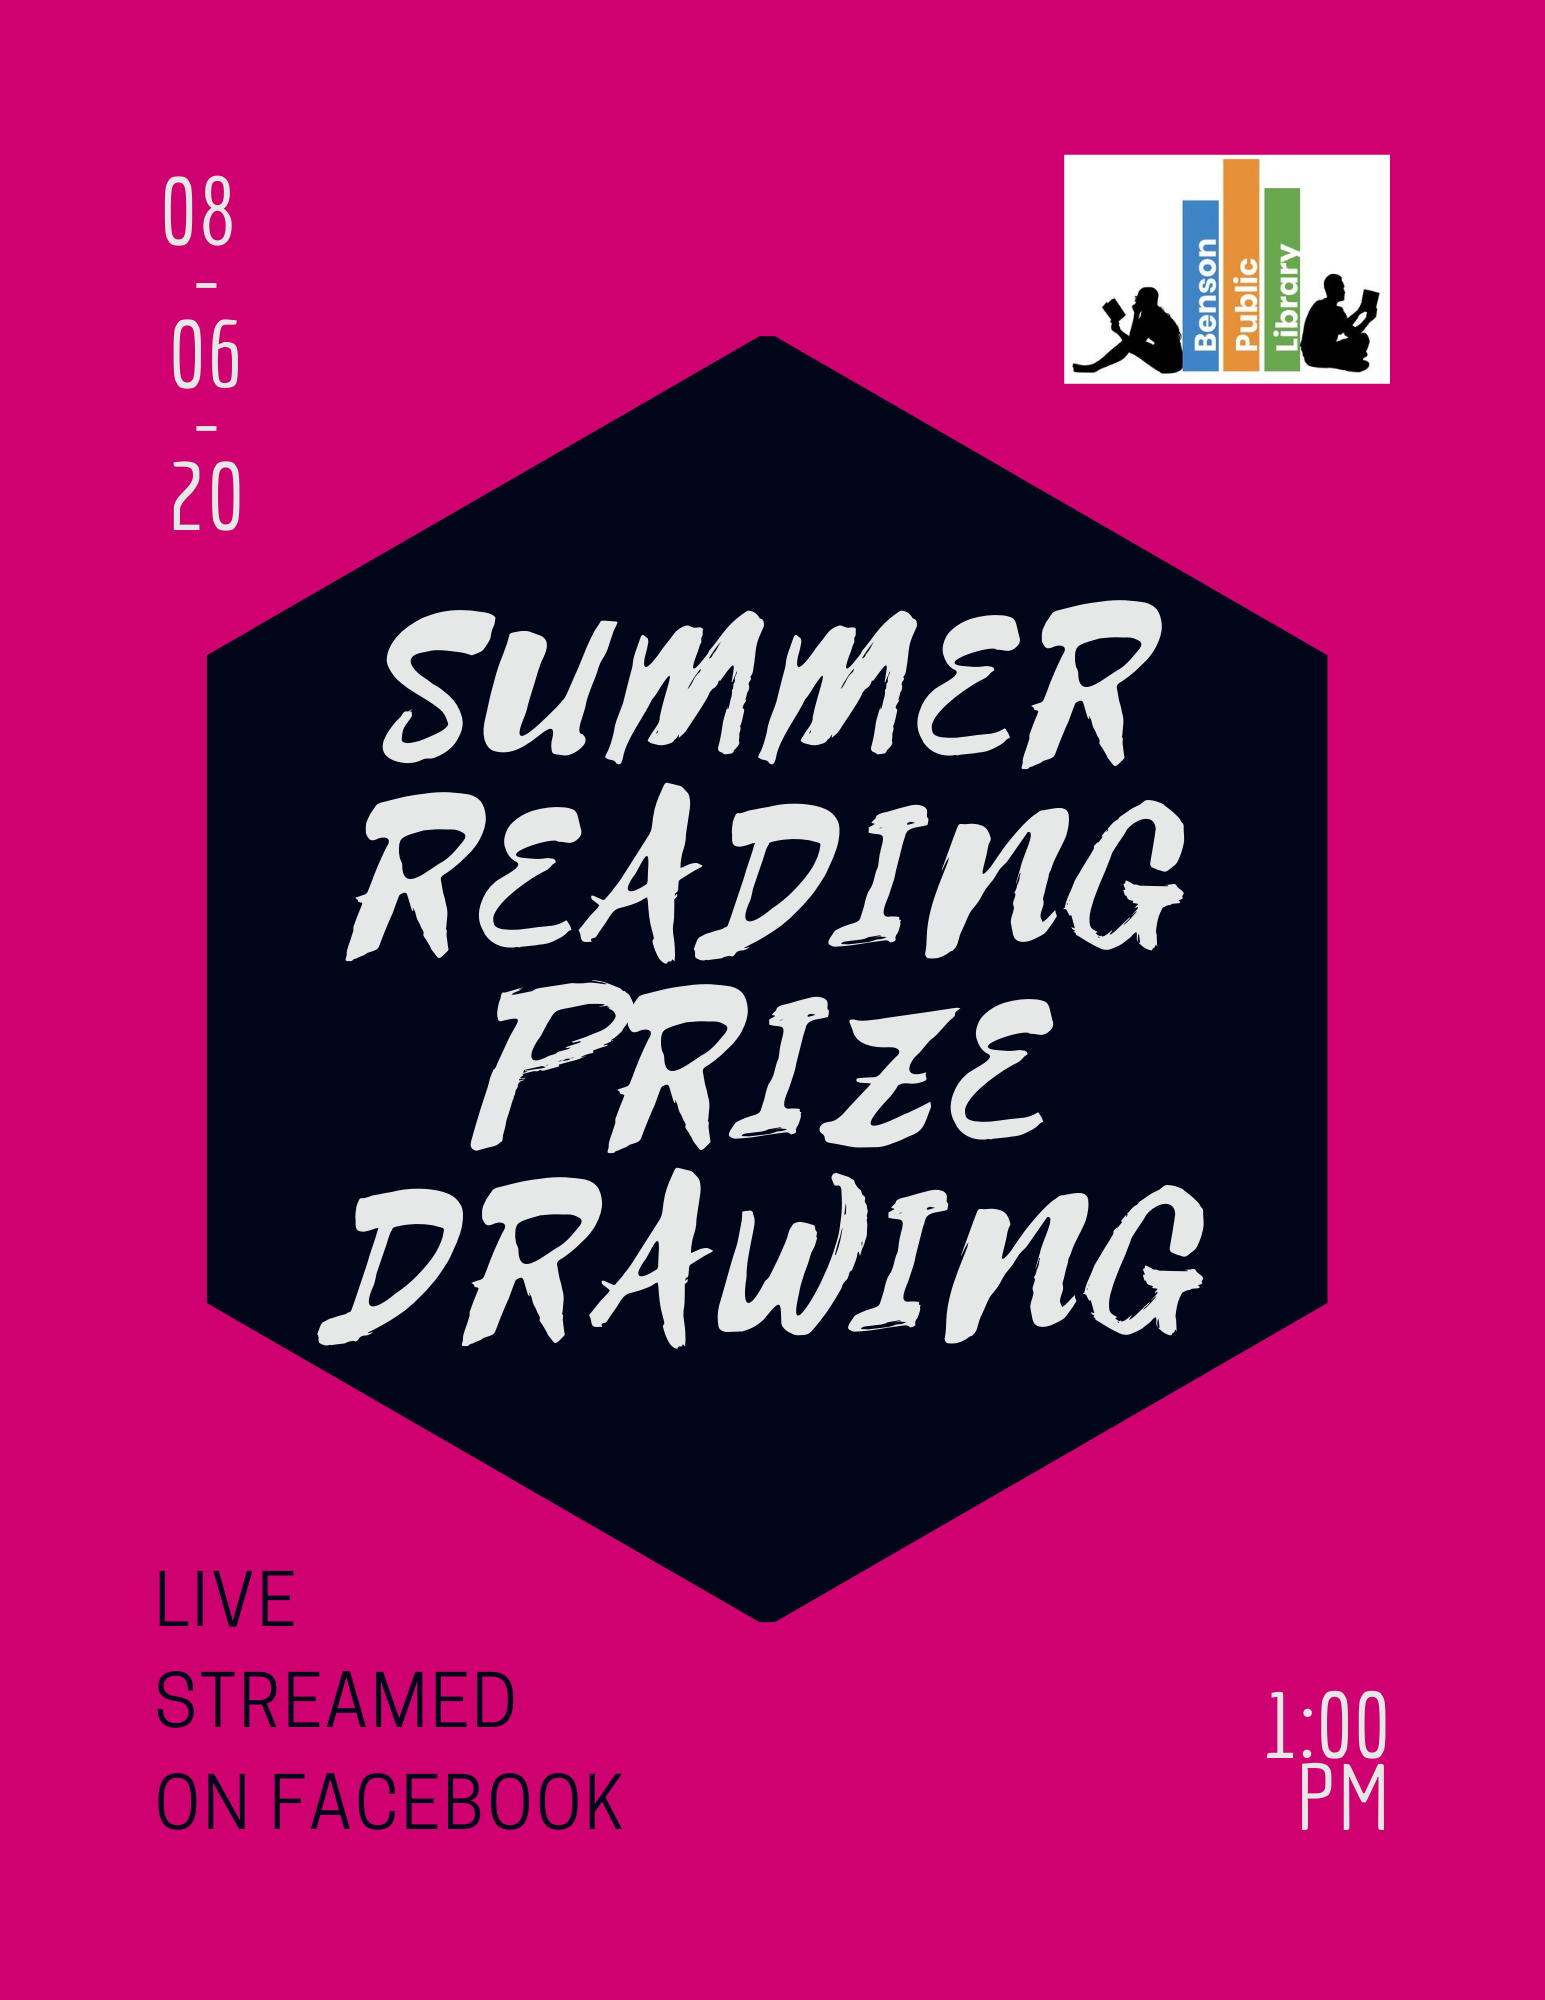 We will be having the Summer Reading Prize Drawing on Thursday, August 6th at 1 pm Live on Facebook! We hope to that you can join us!